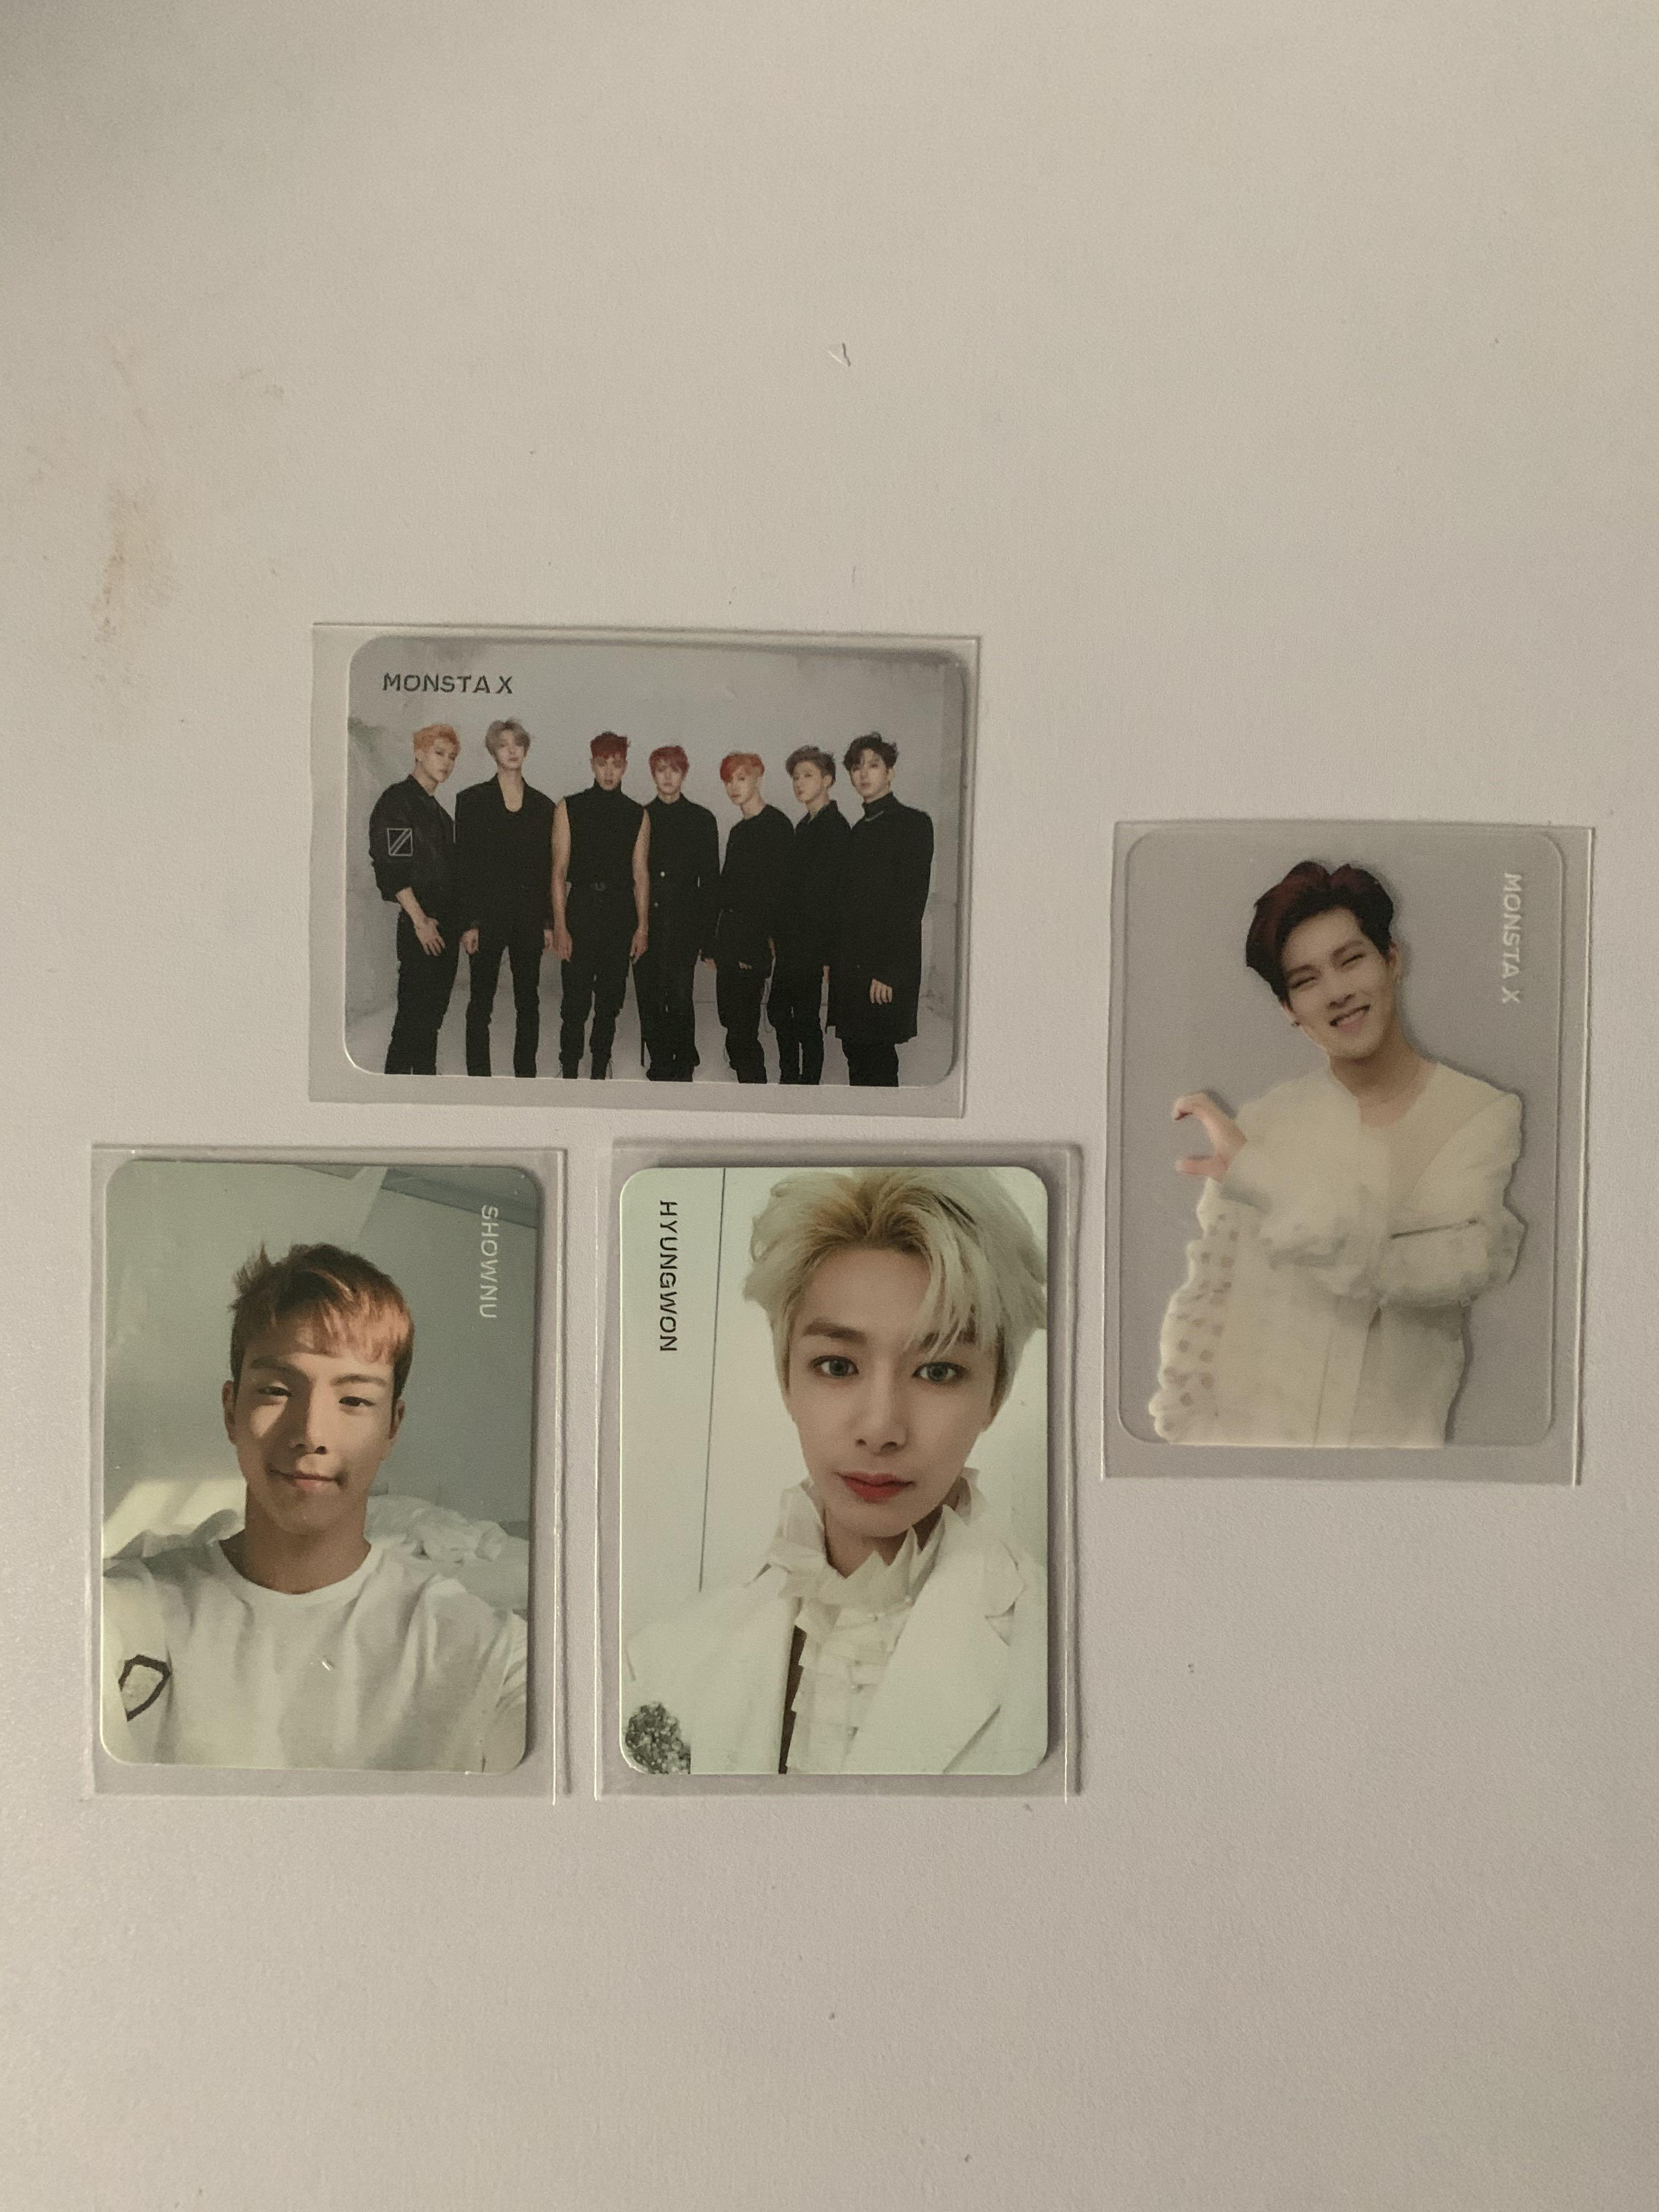 (WTS) Monsta X photocard from Are You There and We Are Here album